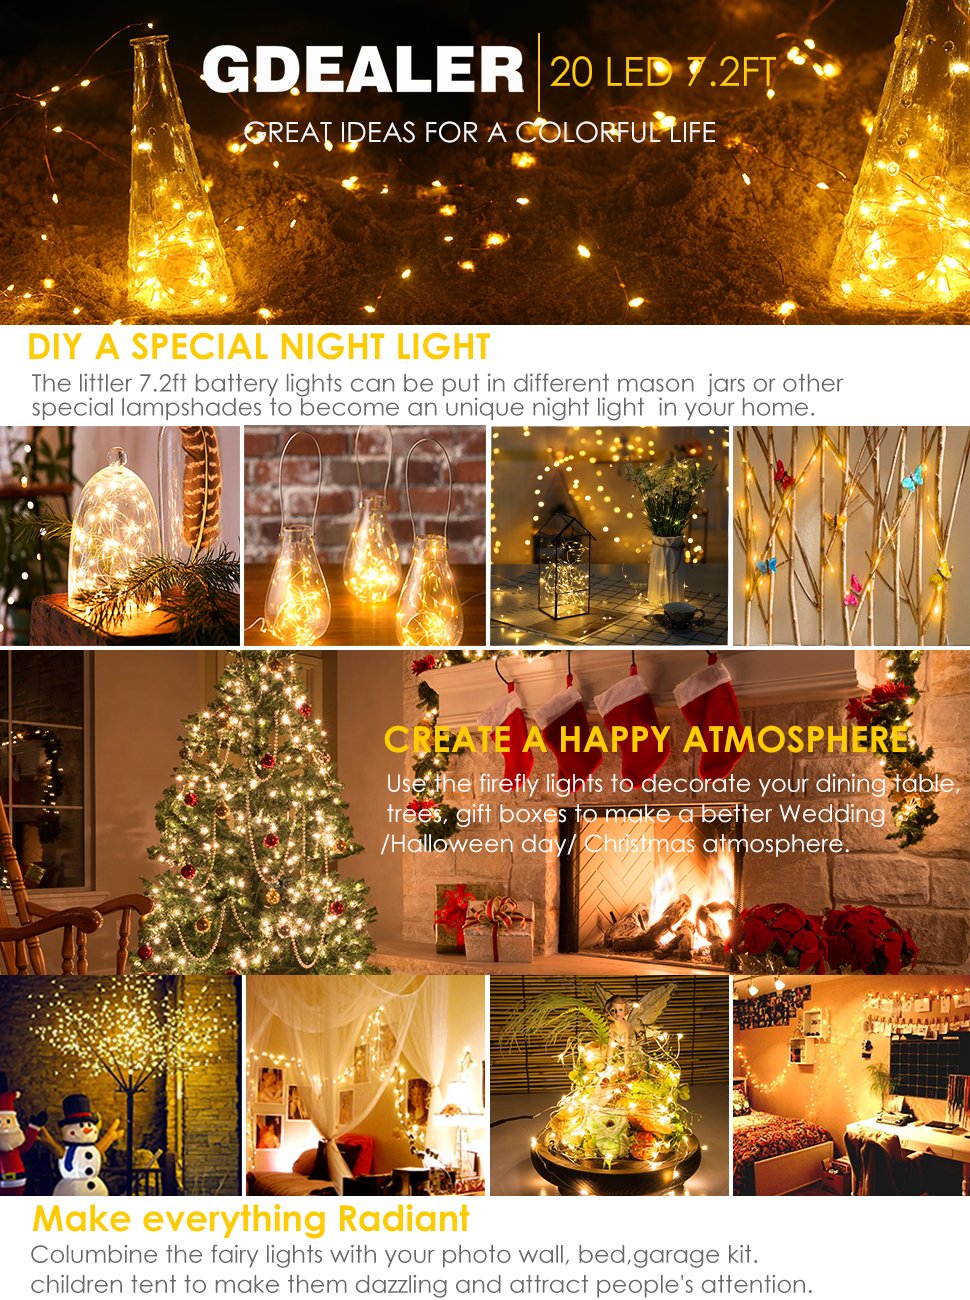 decorate your life and home with the 6 pack 7ft 20 led gdealer fairy string lights - Battery Pack To Plug In Christmas Lights